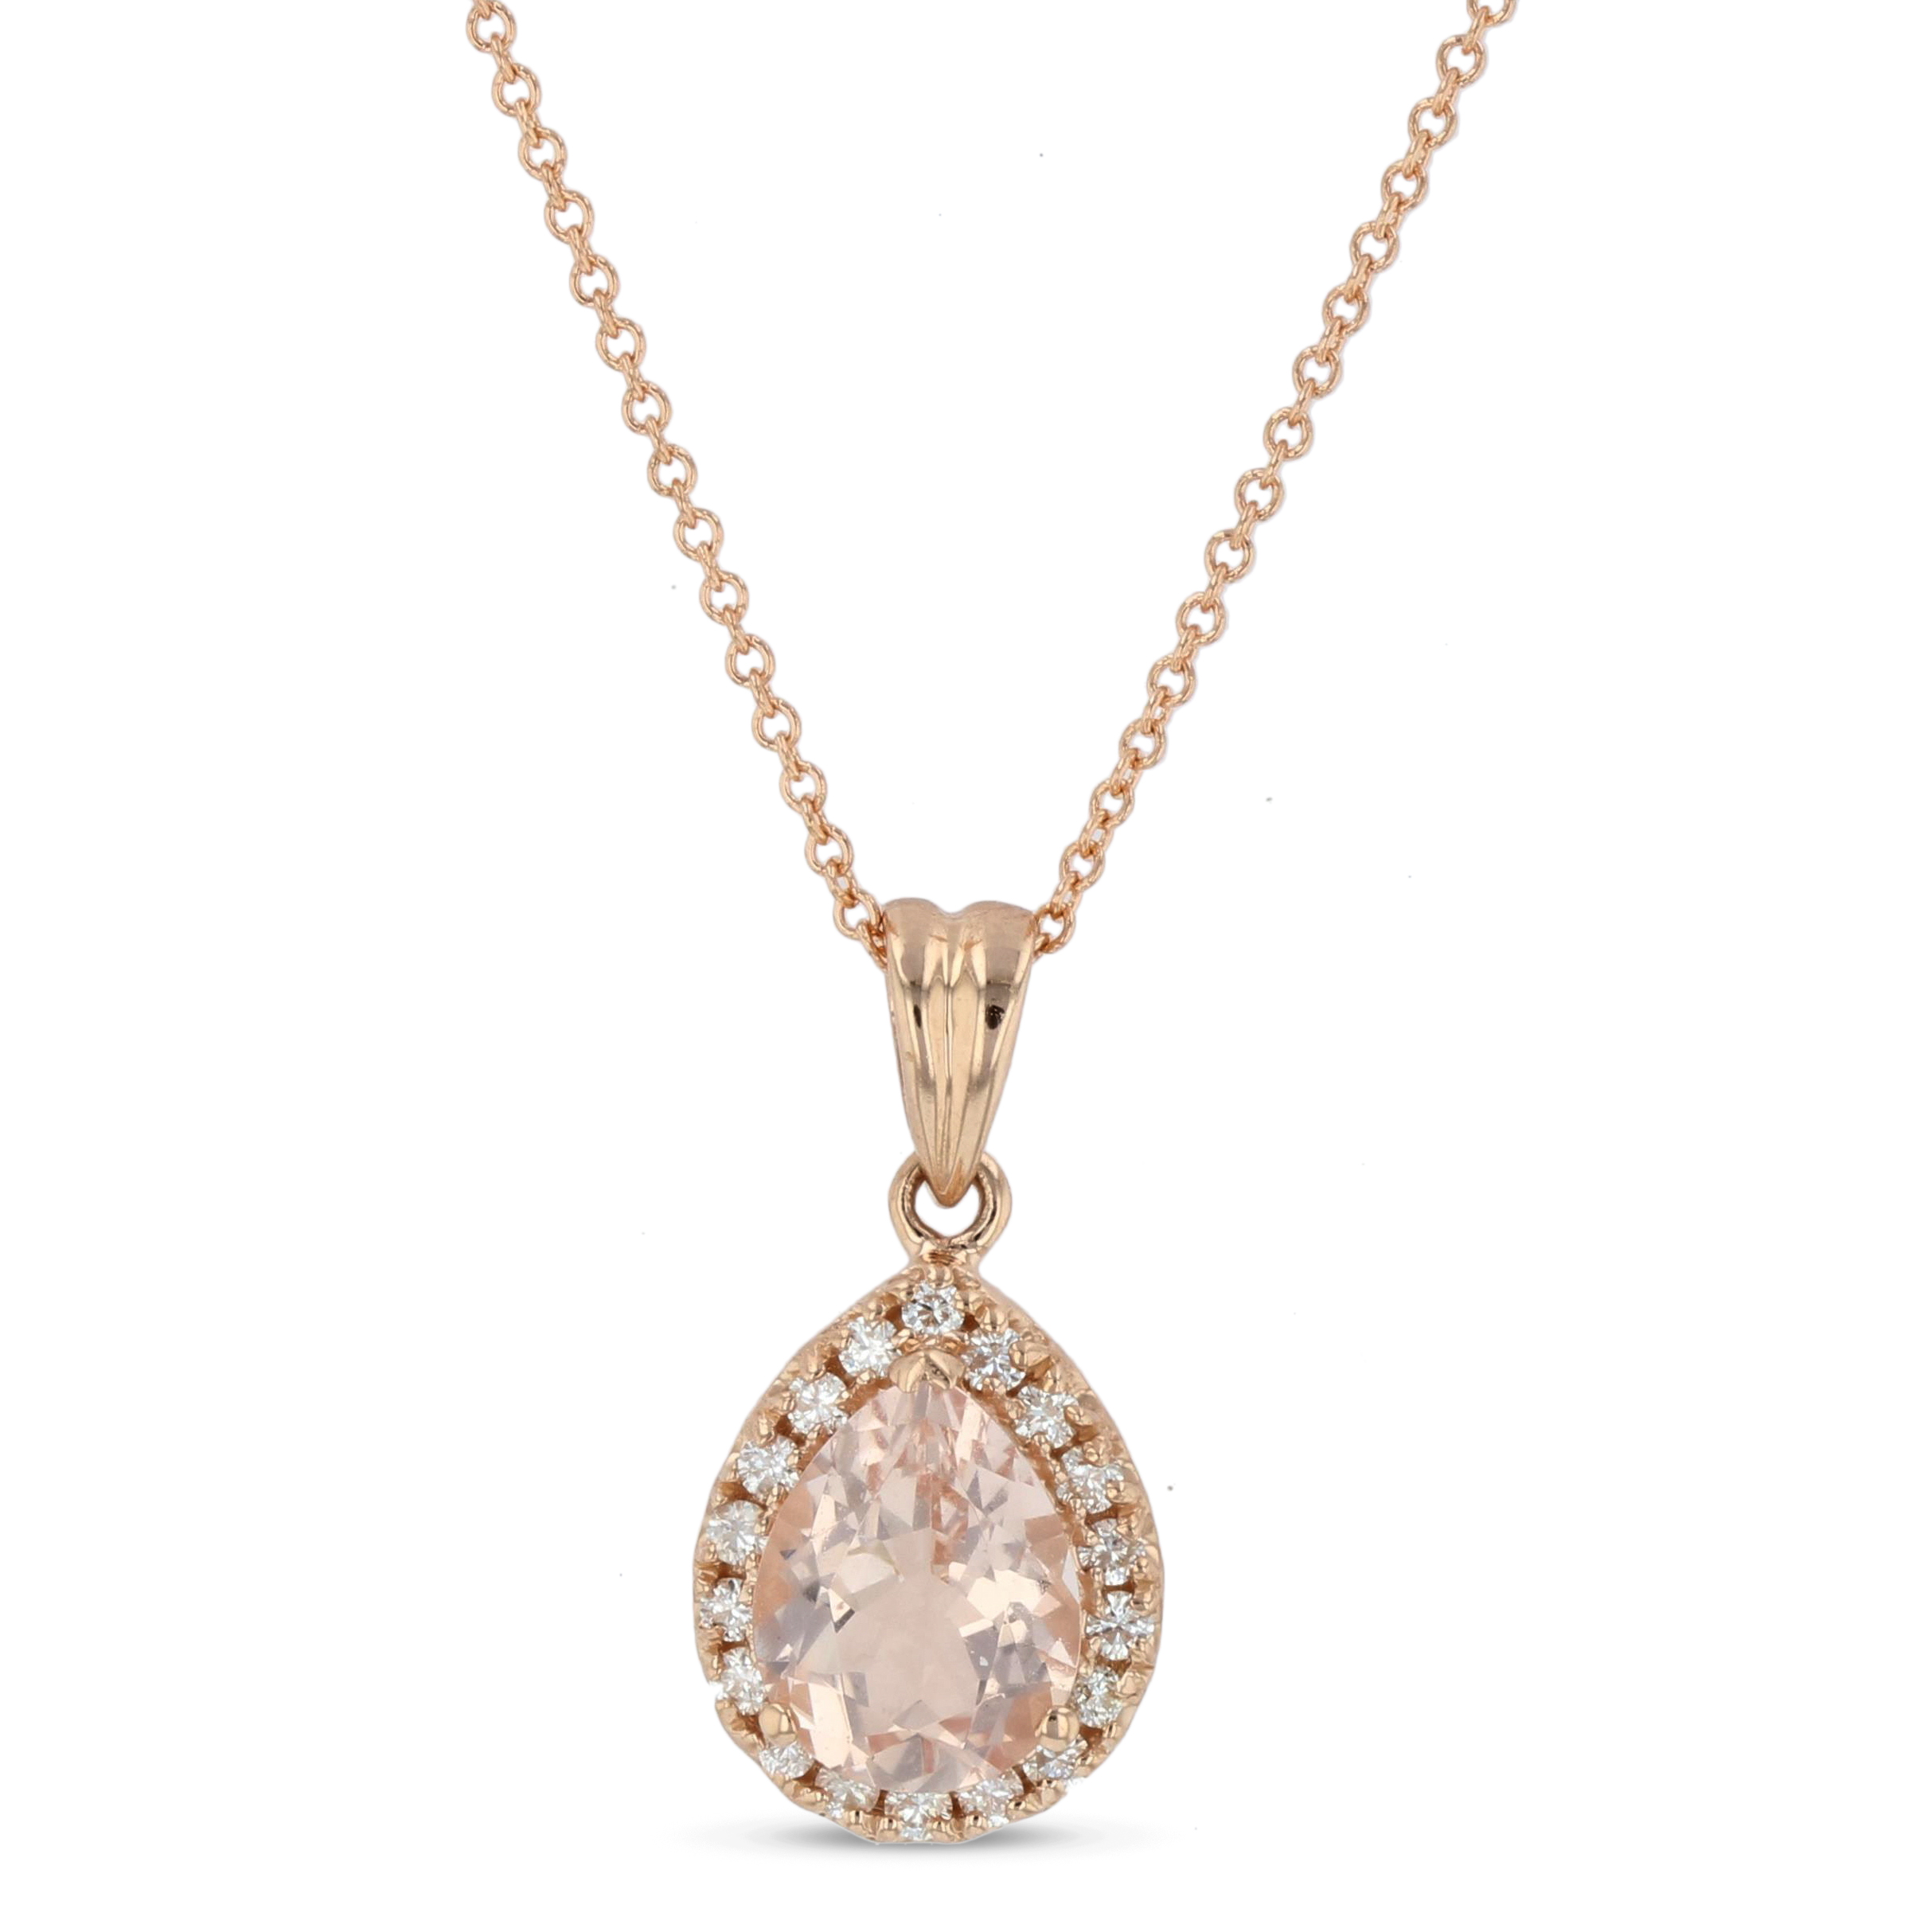 View 1.70ctw Diamond and Morganite Pendant in 14k Rose Gold